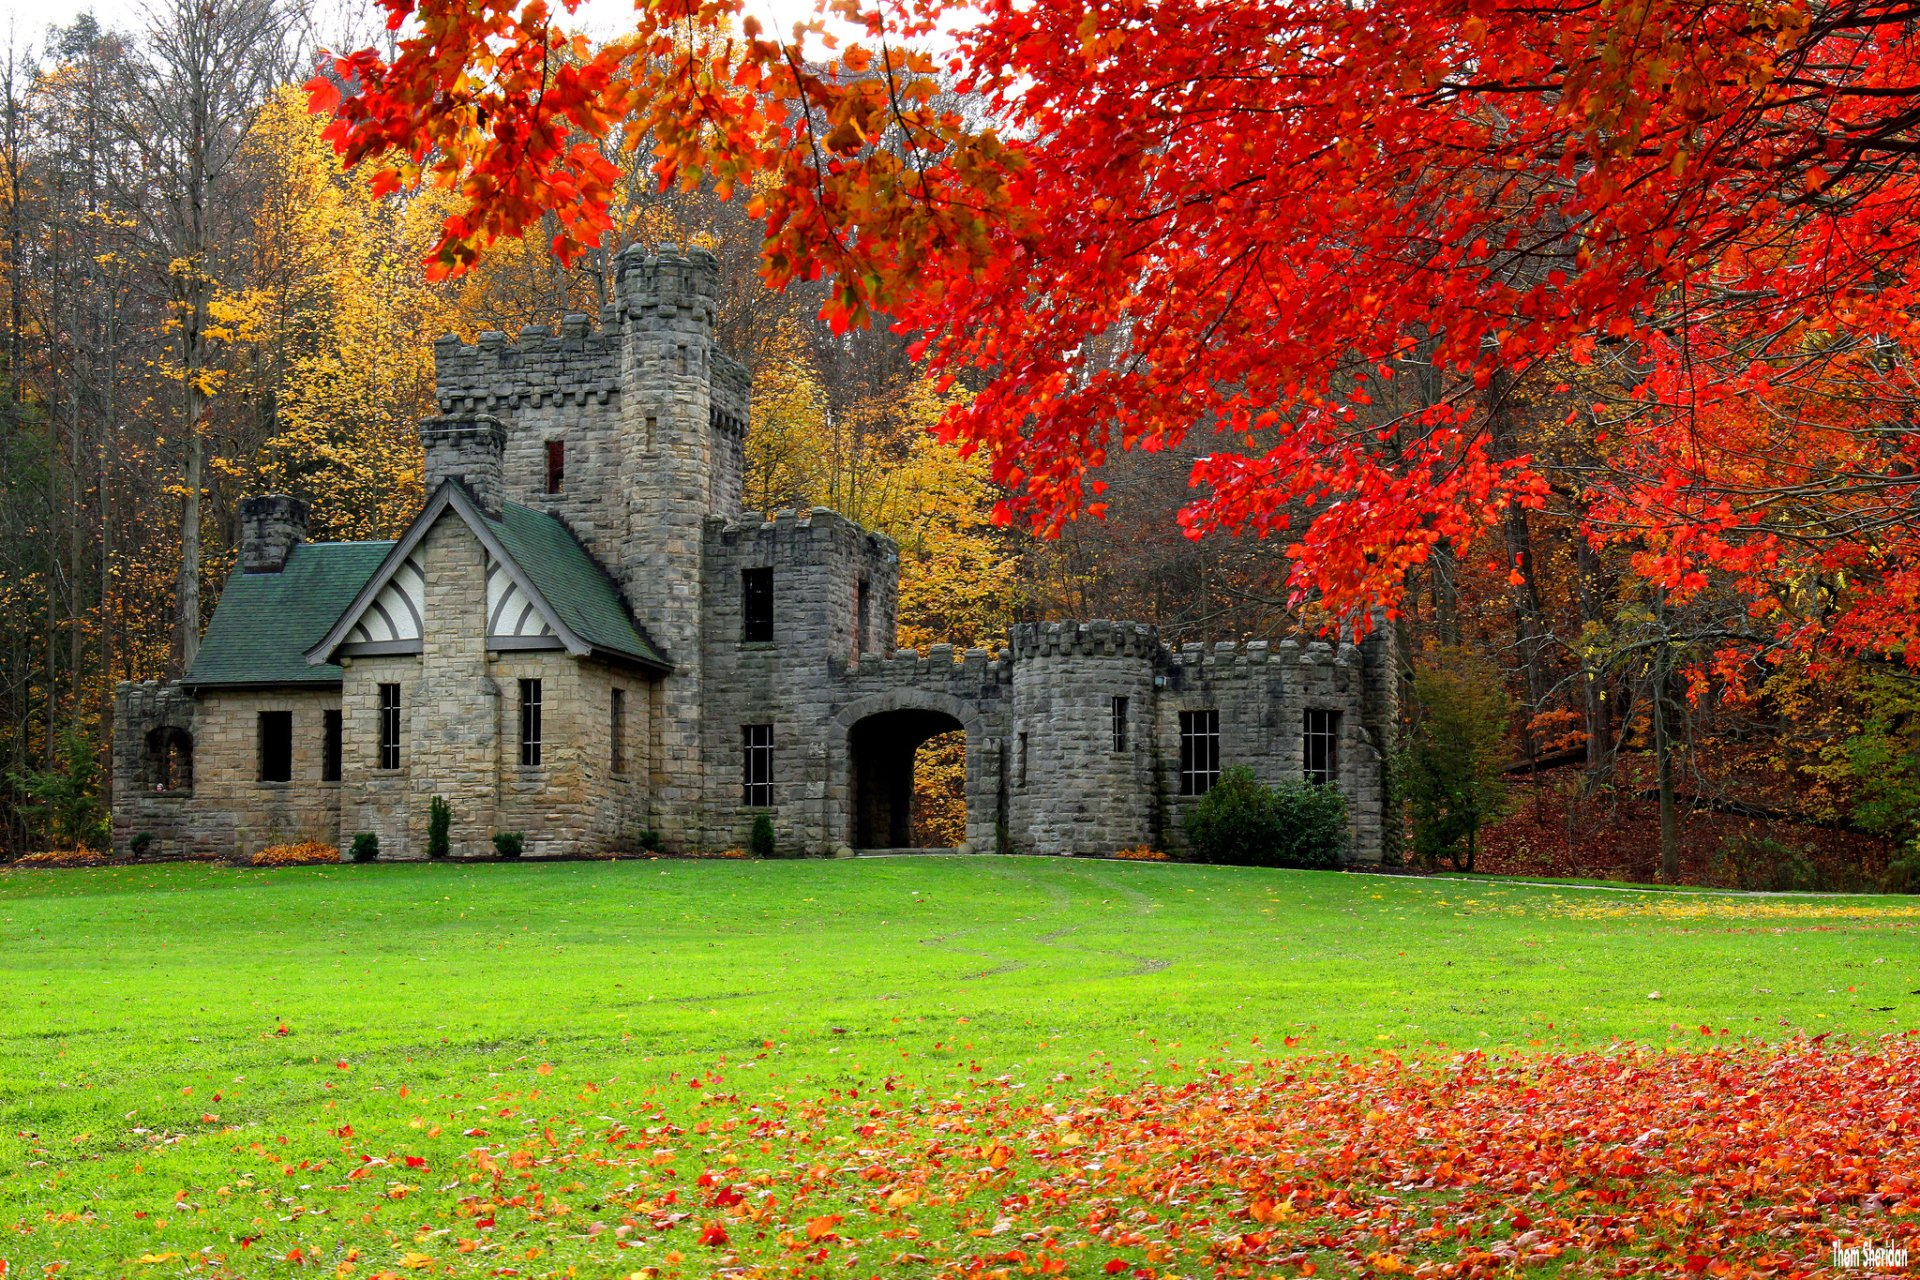 Fall Autumn Iphone Wallpaper Castle In Autumn Full Hd Wallpaper And Background Image